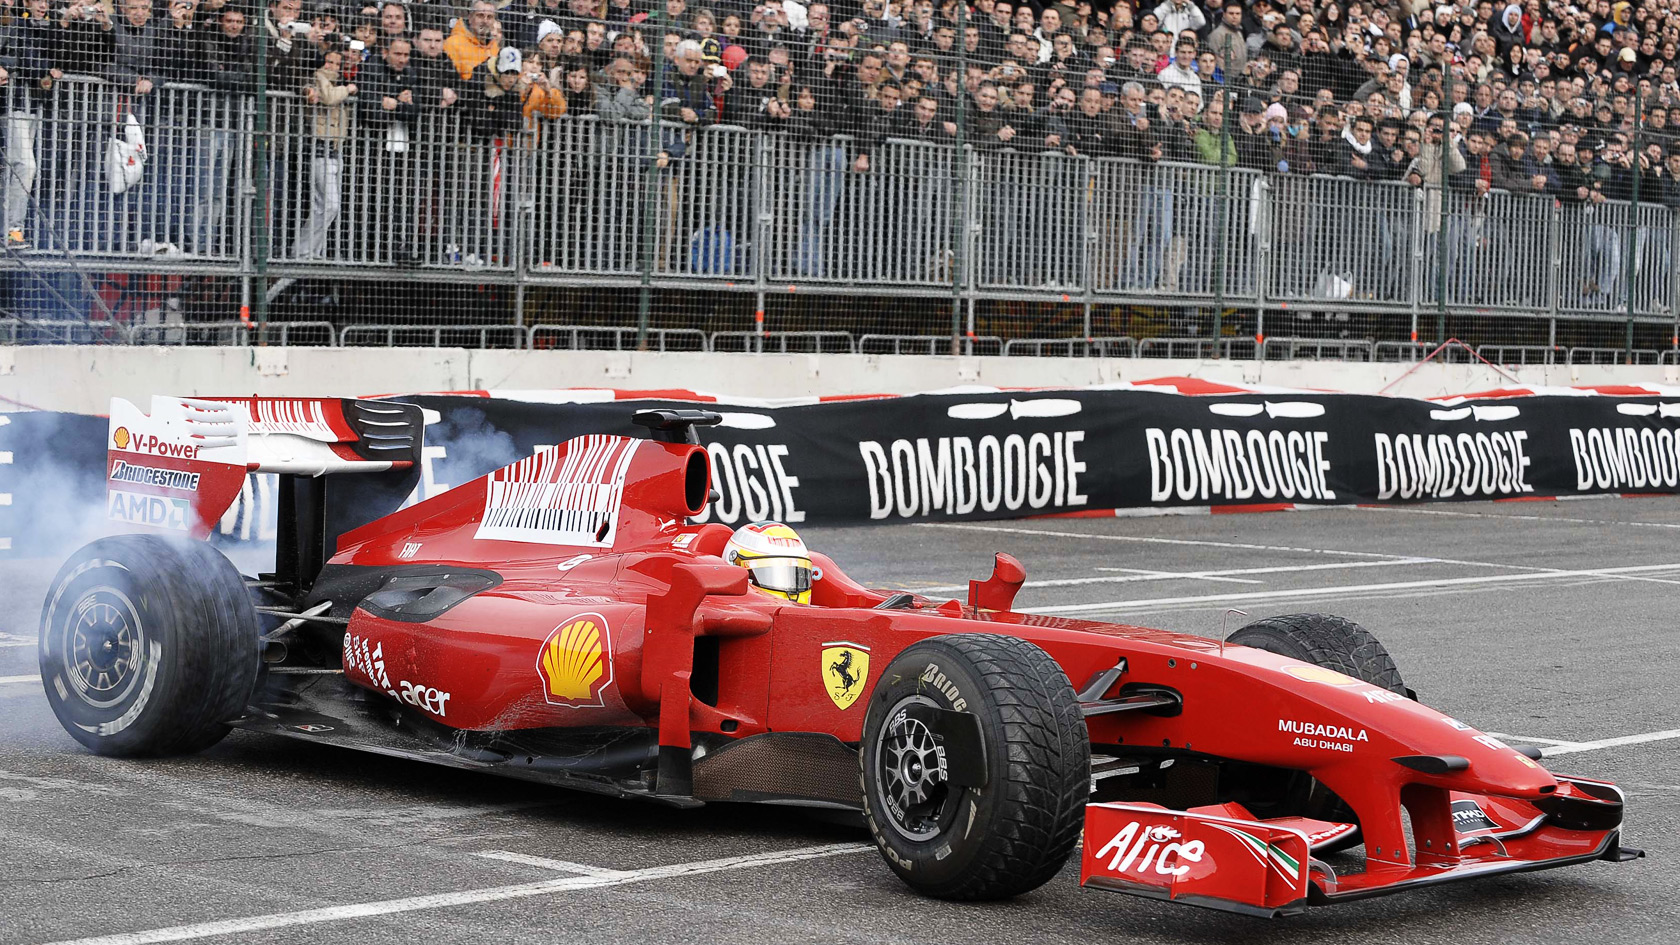 motor show, bologna, Italia, fiere, eventi, events, fairs, italy, bel paese, what to do, cars,